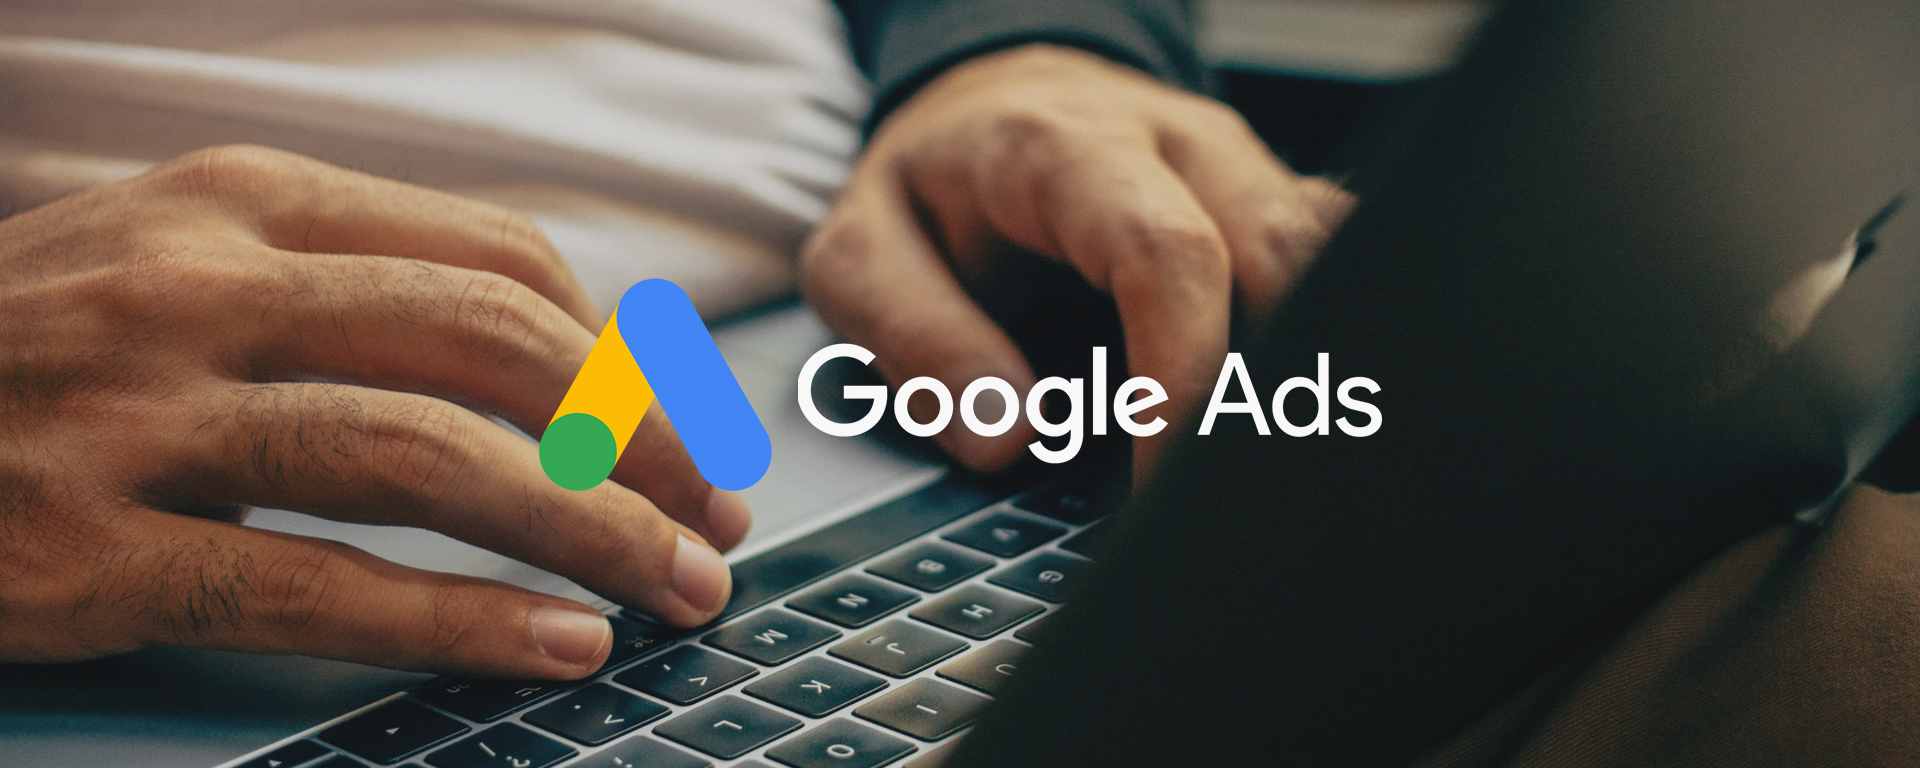 How Affiliates Can Adapt to Google's Decreased Search Term Visibility